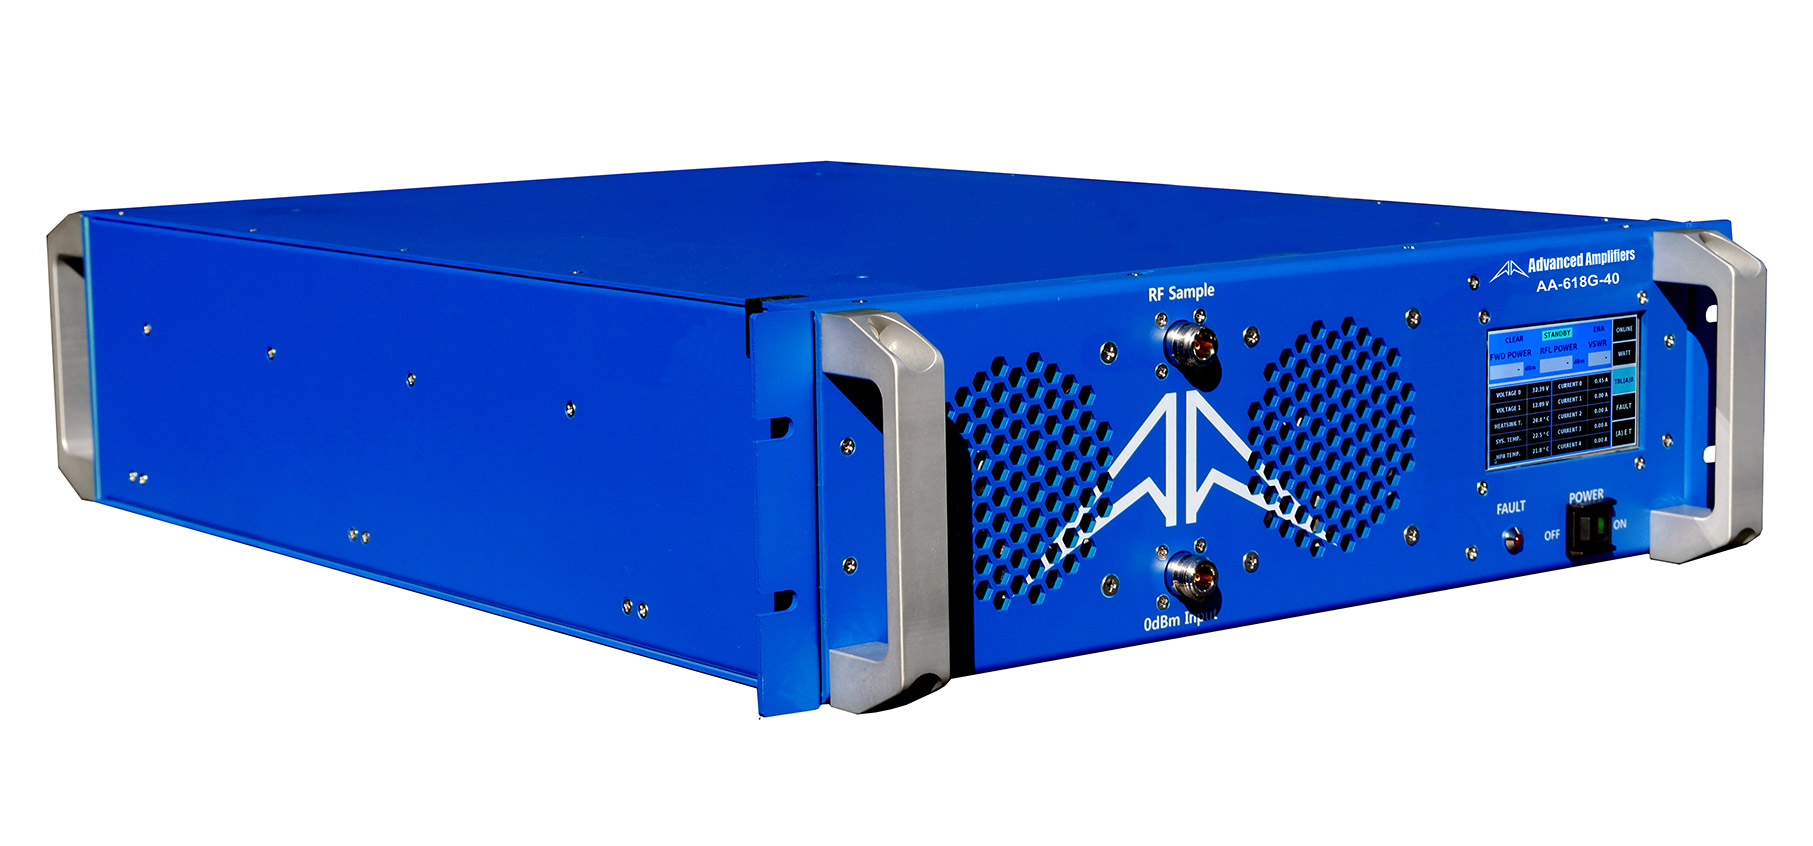 Advanced Amplifiers AA-618G-40 Solid State Amplifier | 6.0 - 18.0 GHz, 40 W